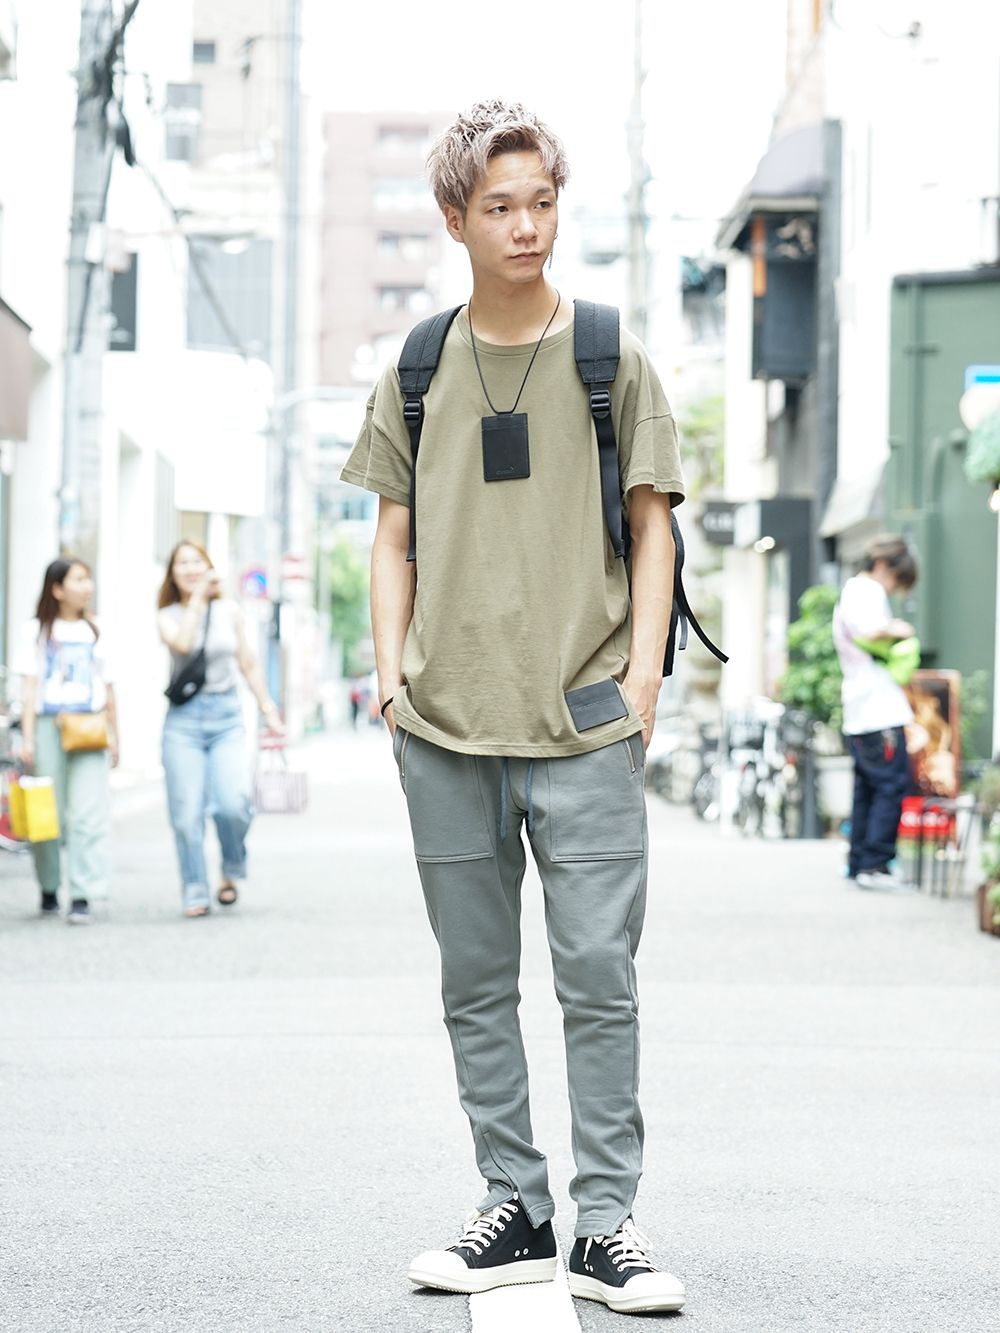 DIET BUTCHER SLIM SKIN 19AW Earth color Styling - 1-001